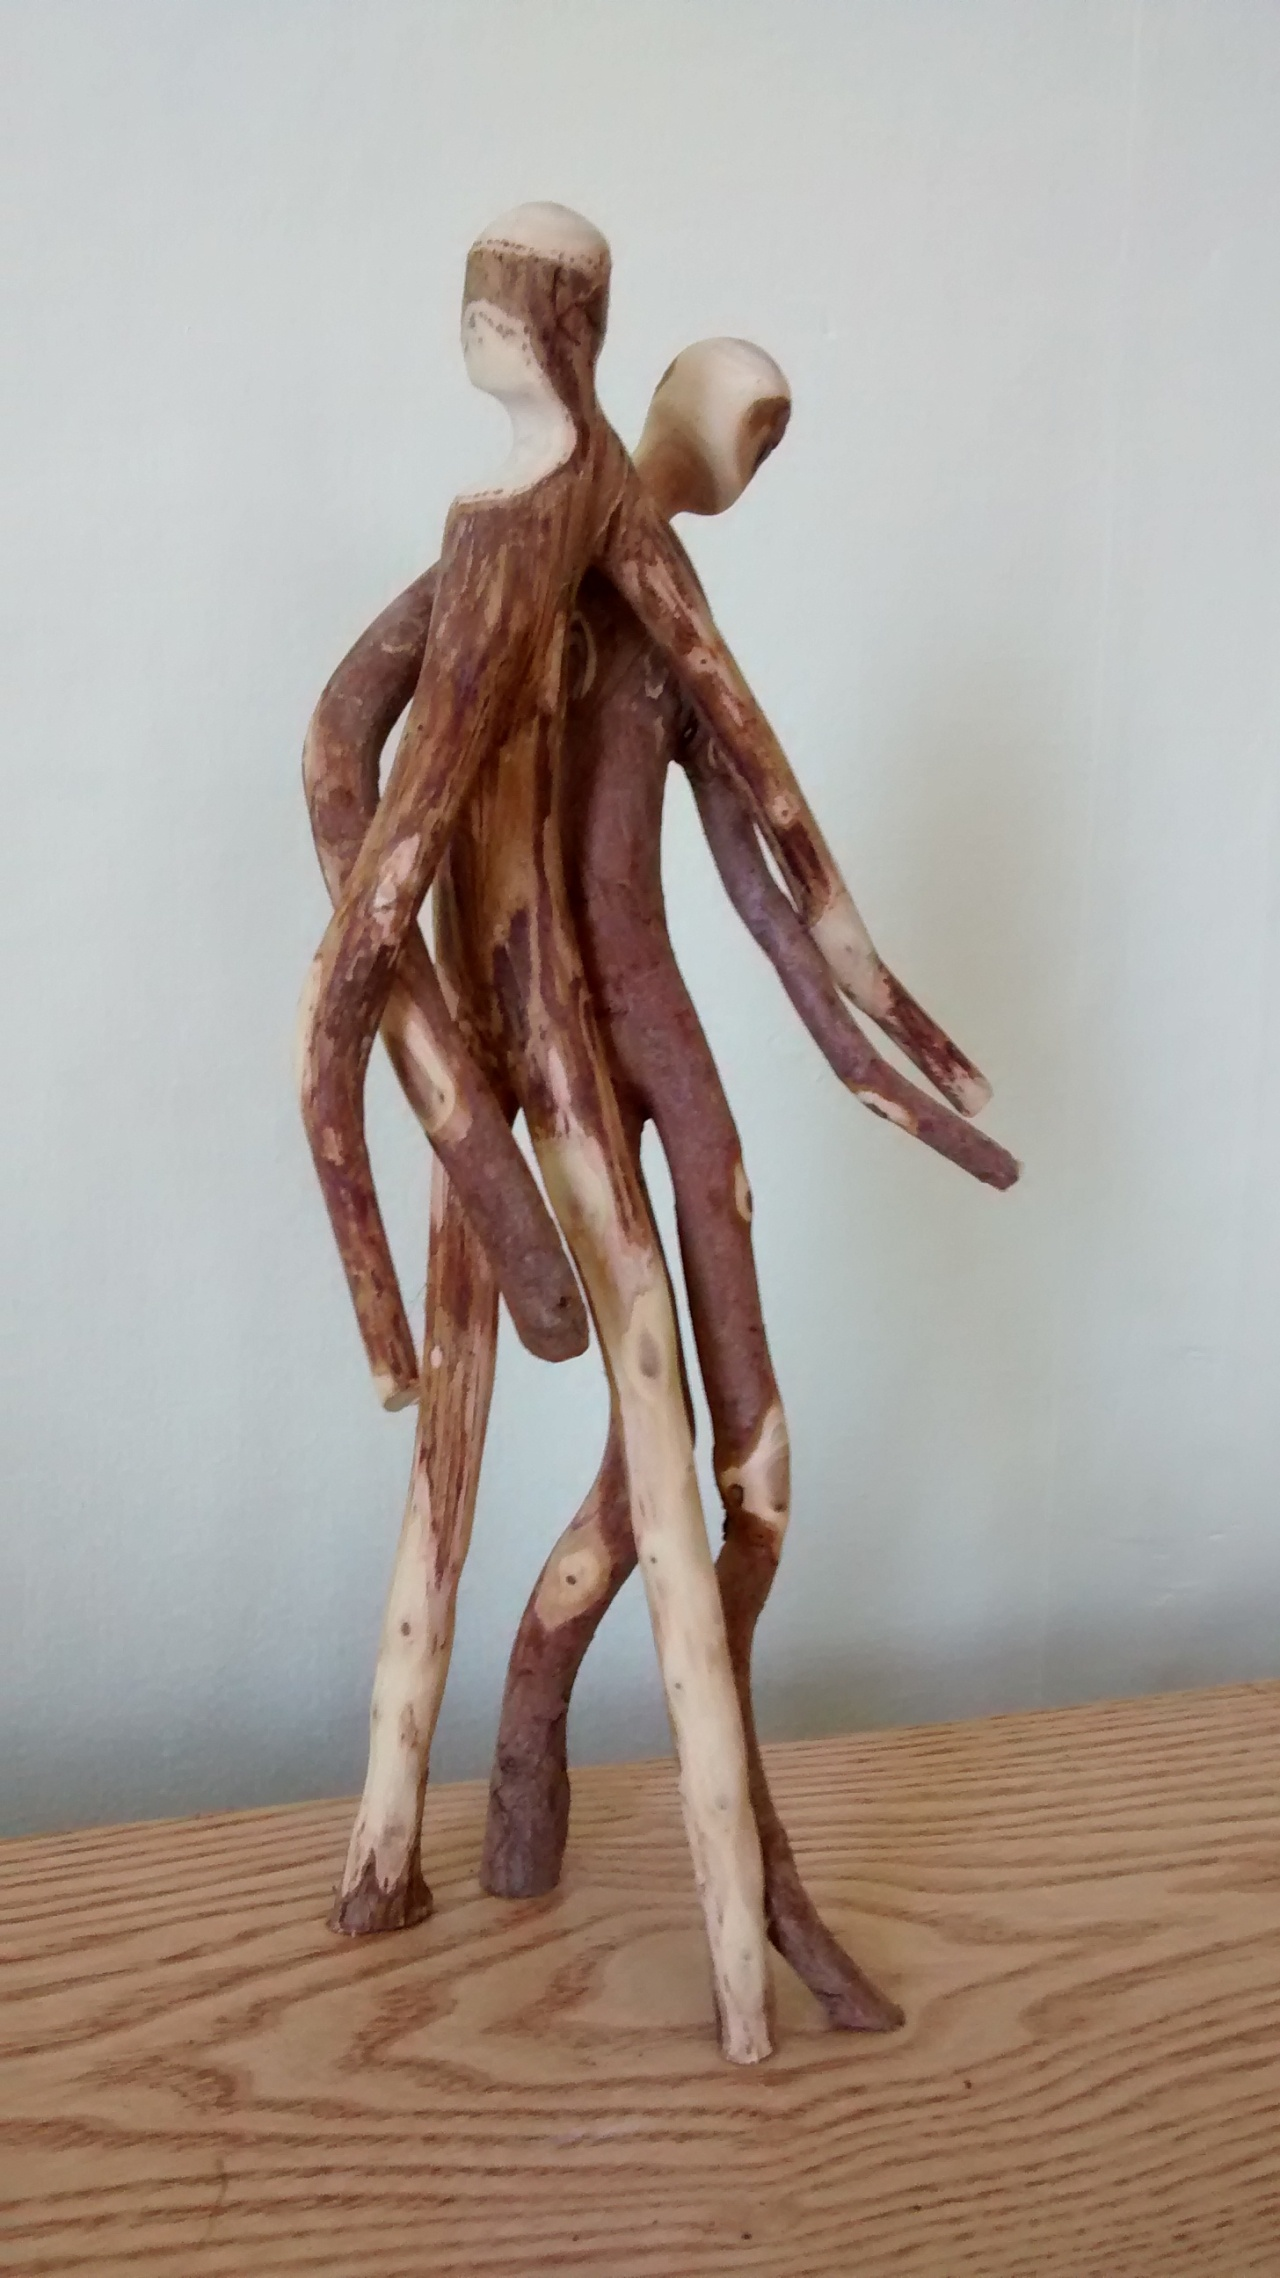 Another Dancing Stick Sculpture #012116